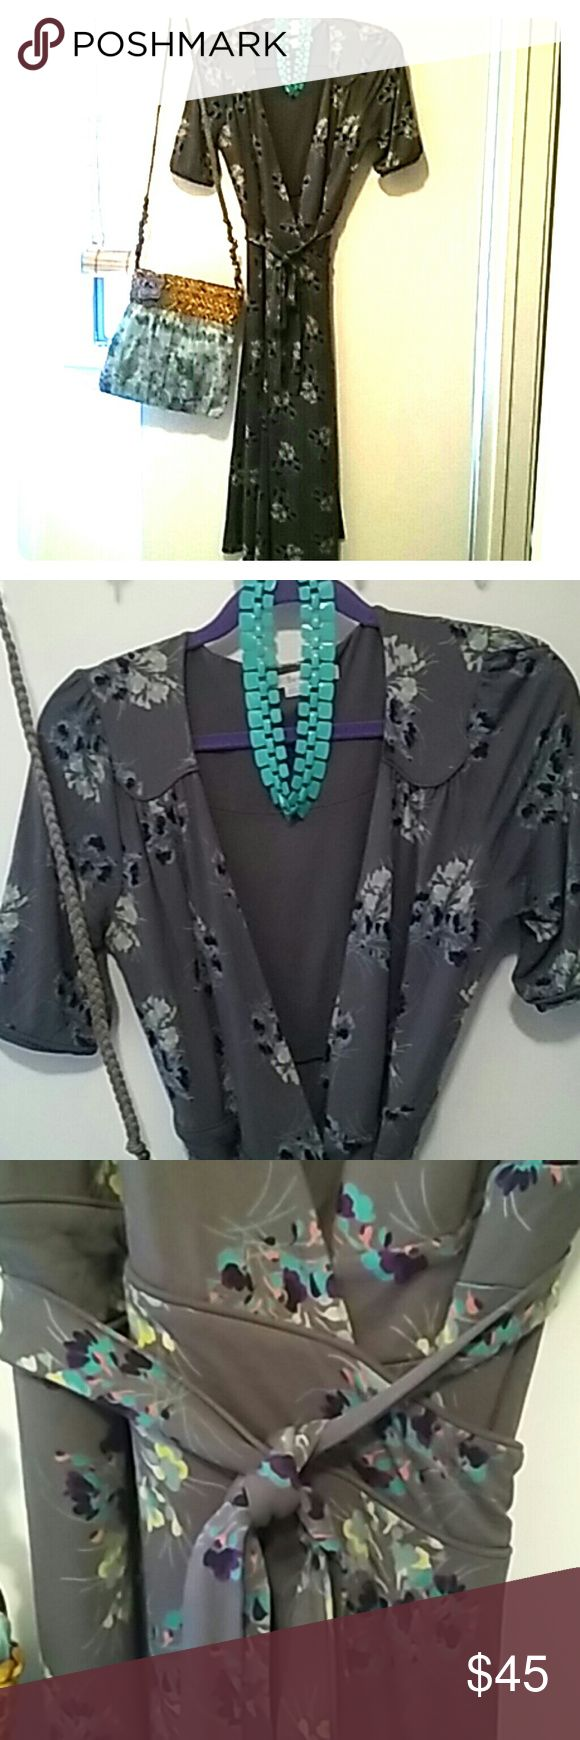 Boden gorgeous wrap dress US size 8L very flattering heavy viscose/elastane. Dark gray background with turquoise, yellow, pink, purple and black. Short sleeve with button detail. Good for all seasons. Mid length. Boden Dresses Midi